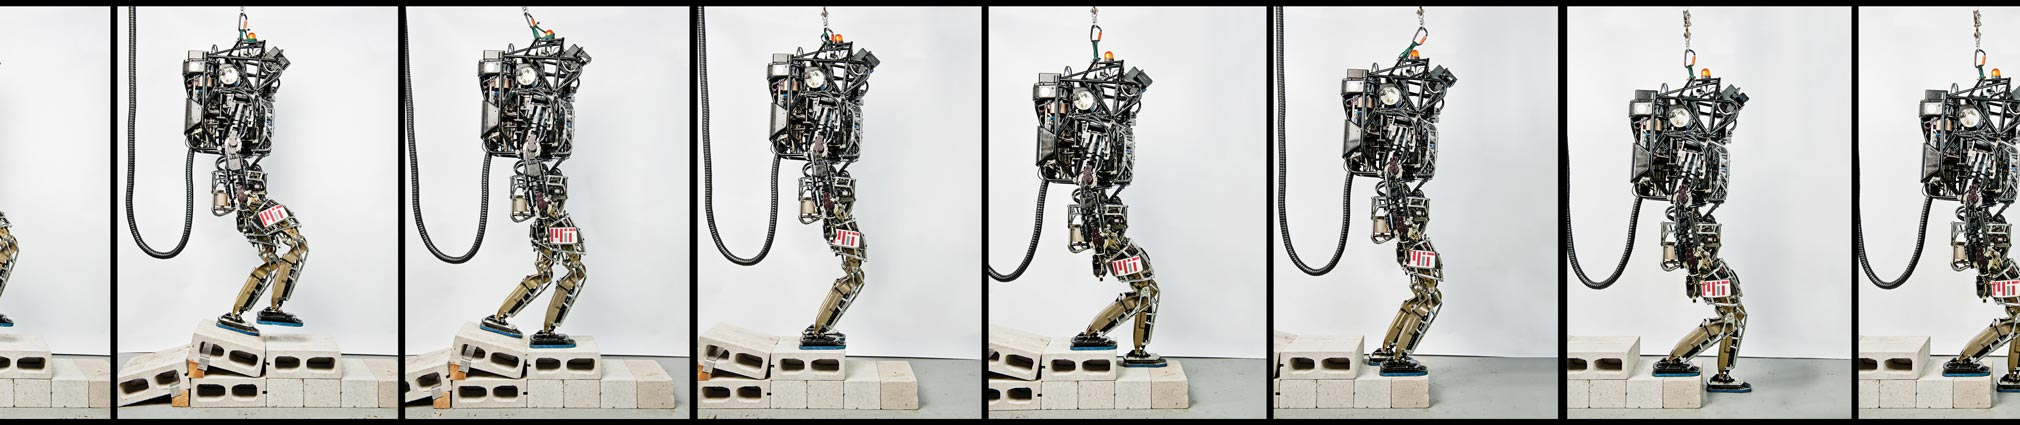 Researchers at MIT, led by Seth Teller and Russ Tedrake, replaced the dynamic balance software that comes with Atlas with their own version. This lets the robot walk relatively quickly over uneven and unfamiliar ground.